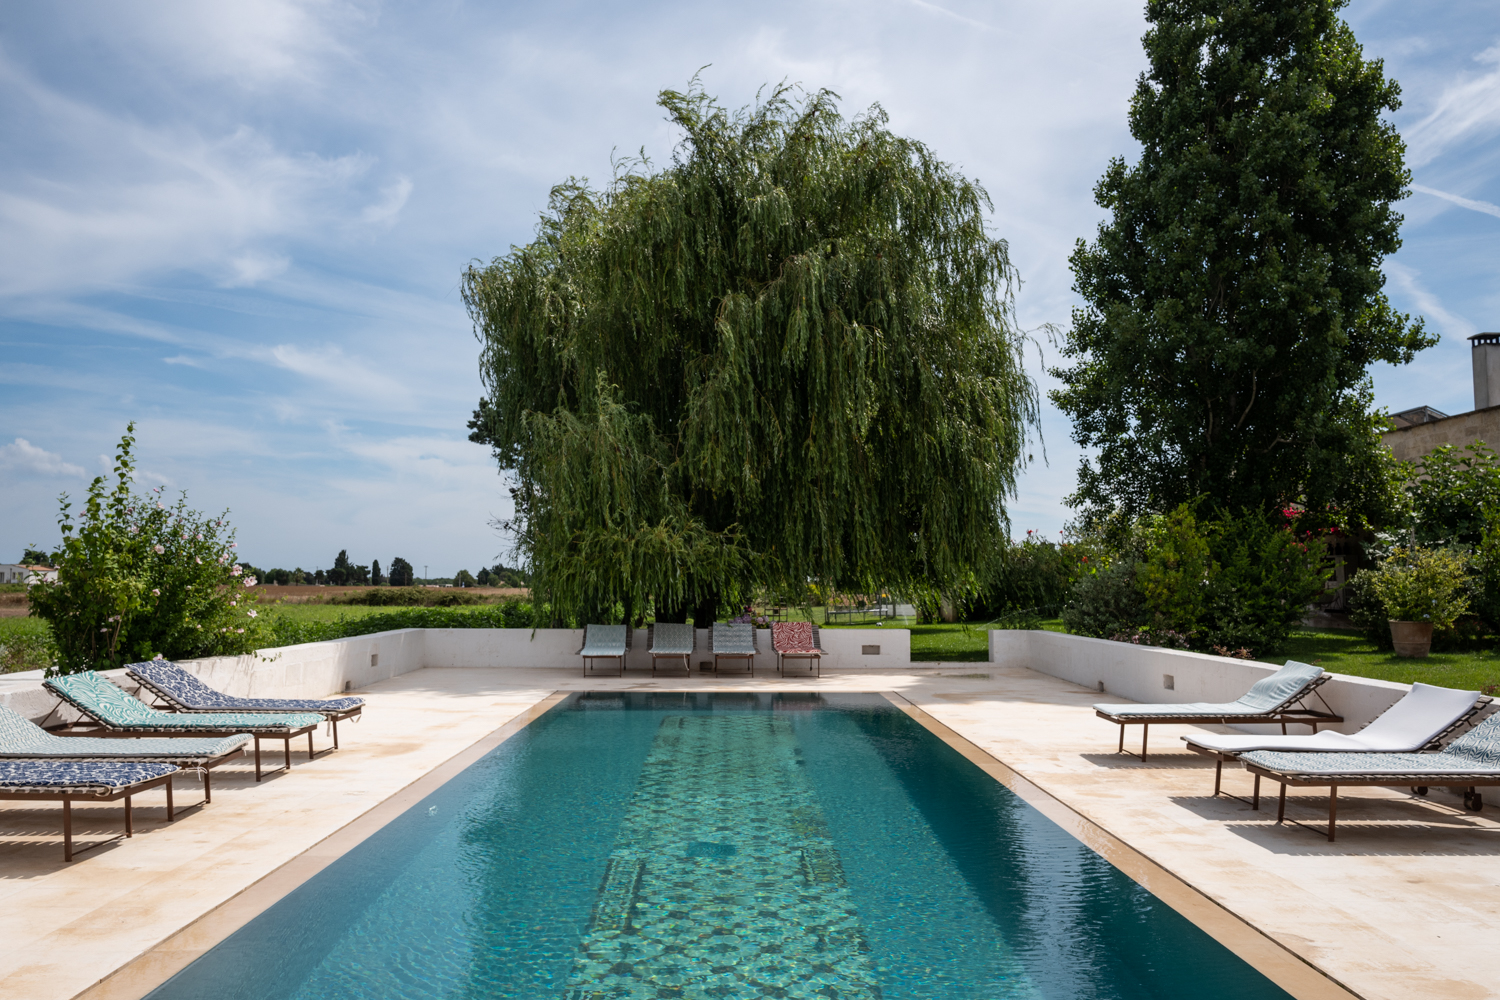 Pool Deck at Masseria Prosperi